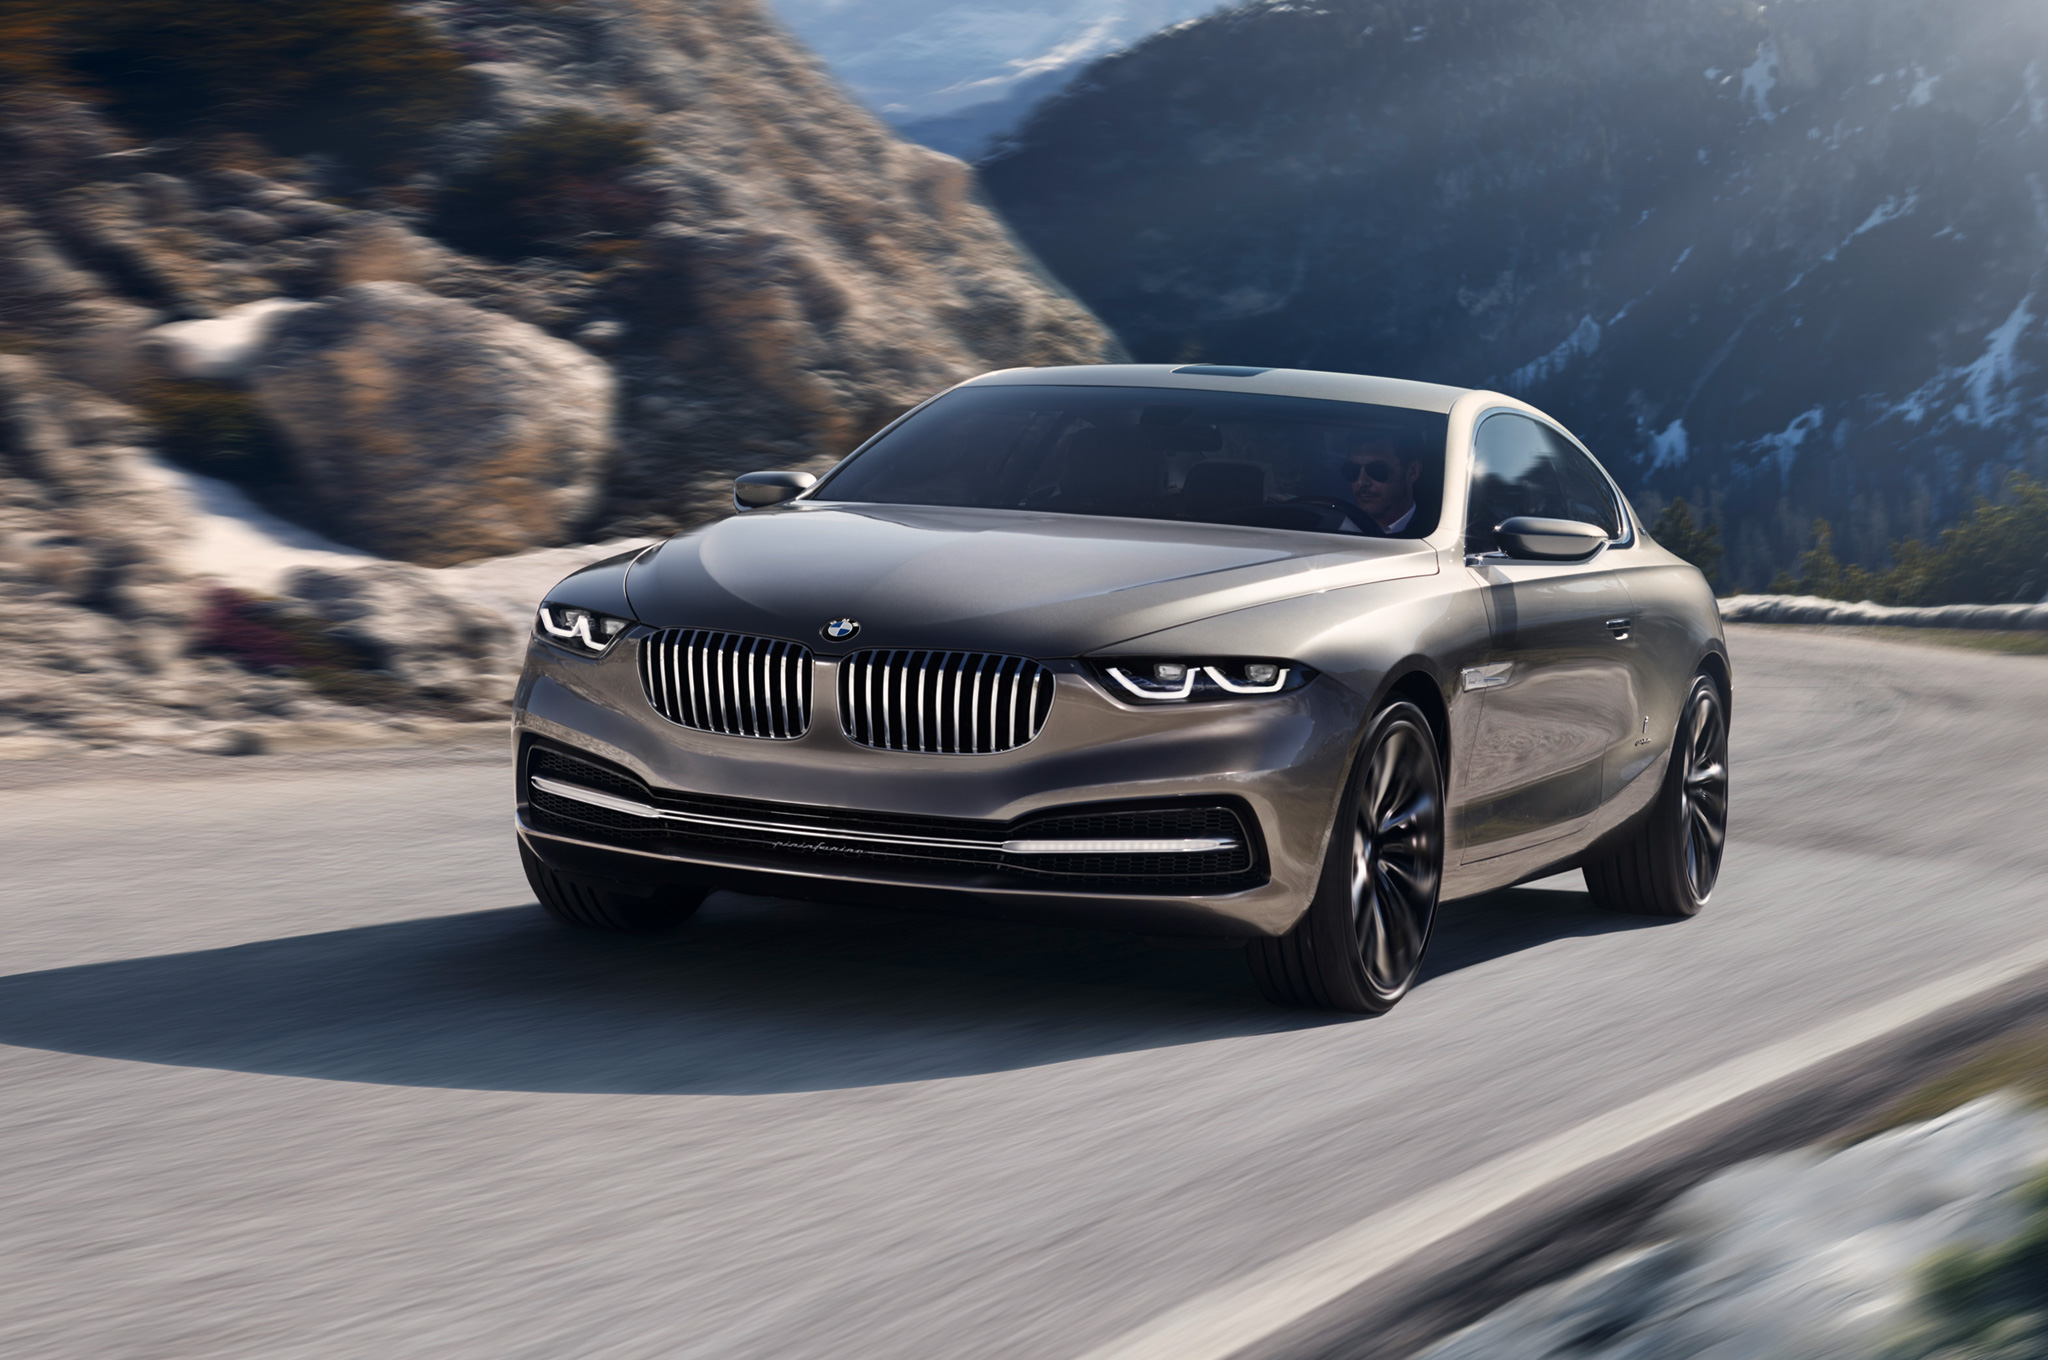 BMW-Pininfarina-Gran-Lusso-Coupe-concept-front-three-quarters-view-in-corner